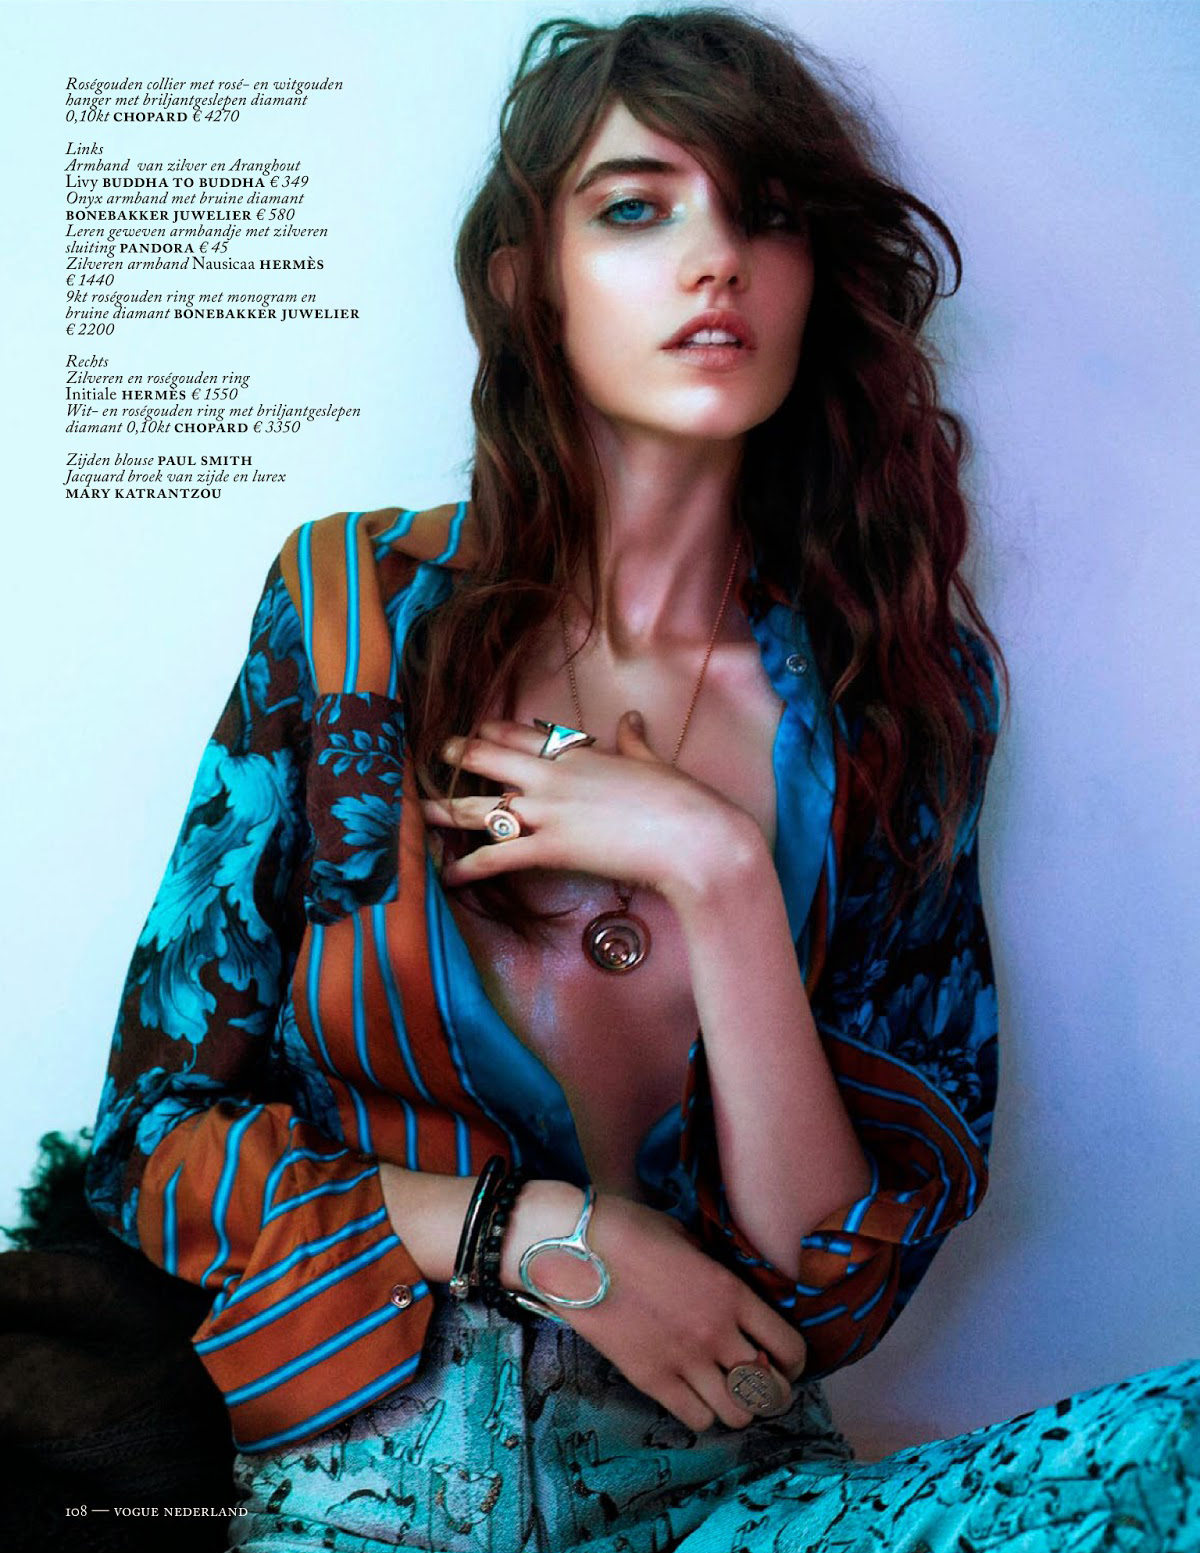 Boe Marion for Vogue Netherlands March 2014